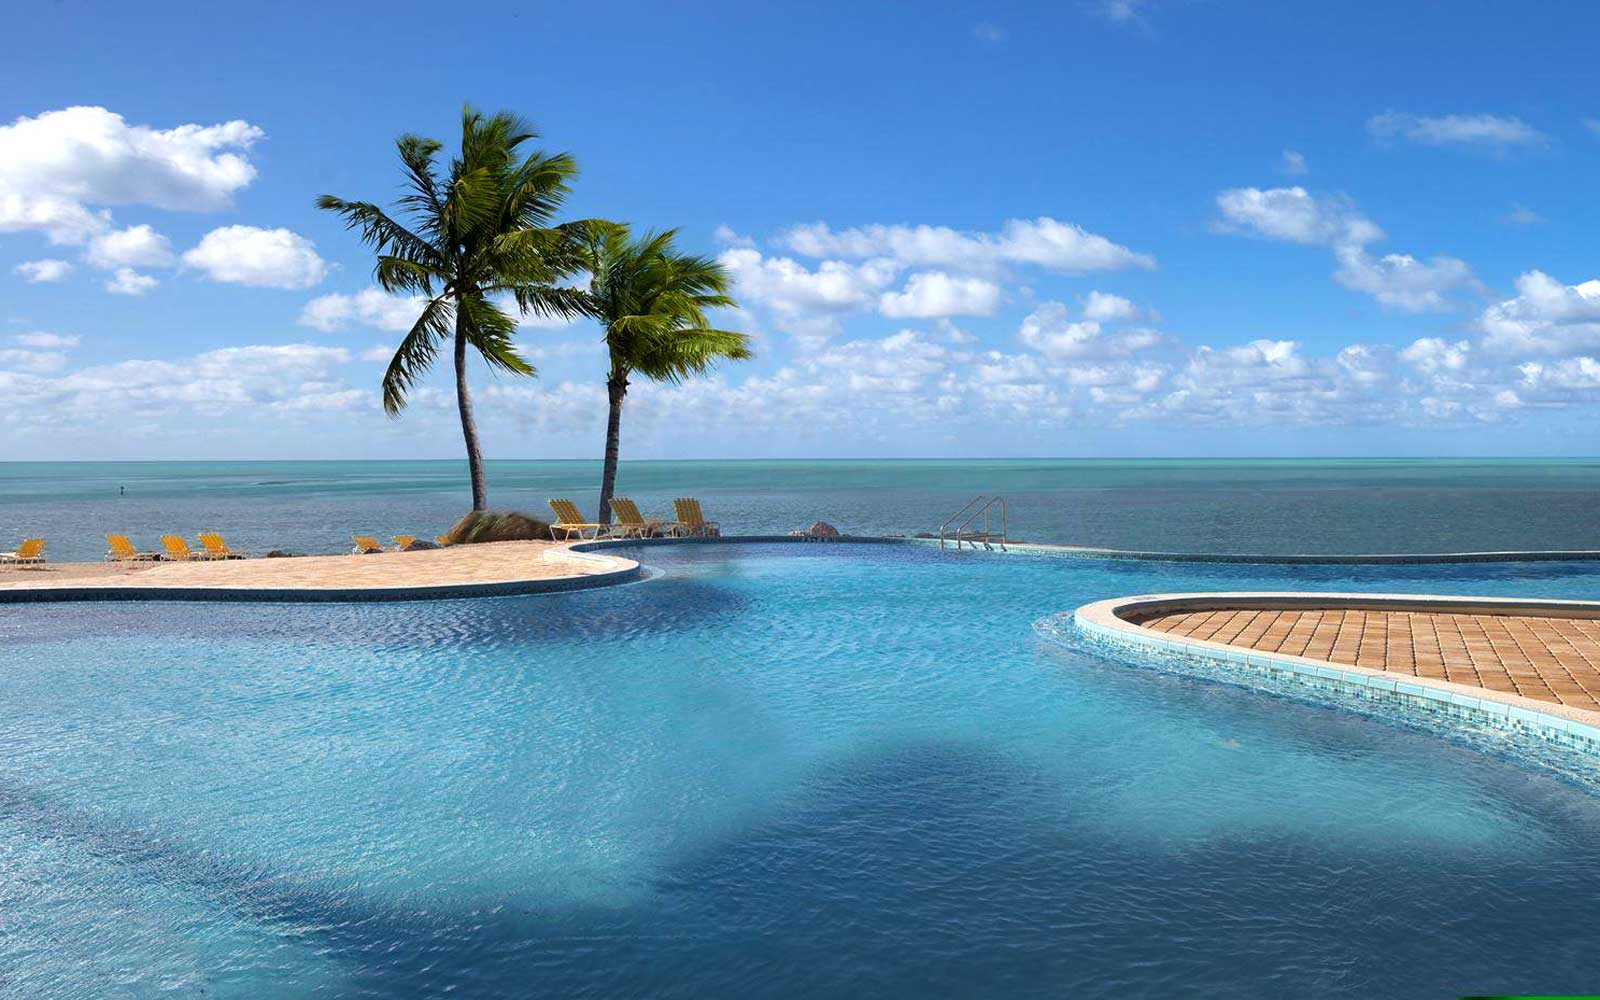 Take 33% Off Your Stay at the Postcard Inn Beach Resort in the Florida Keys